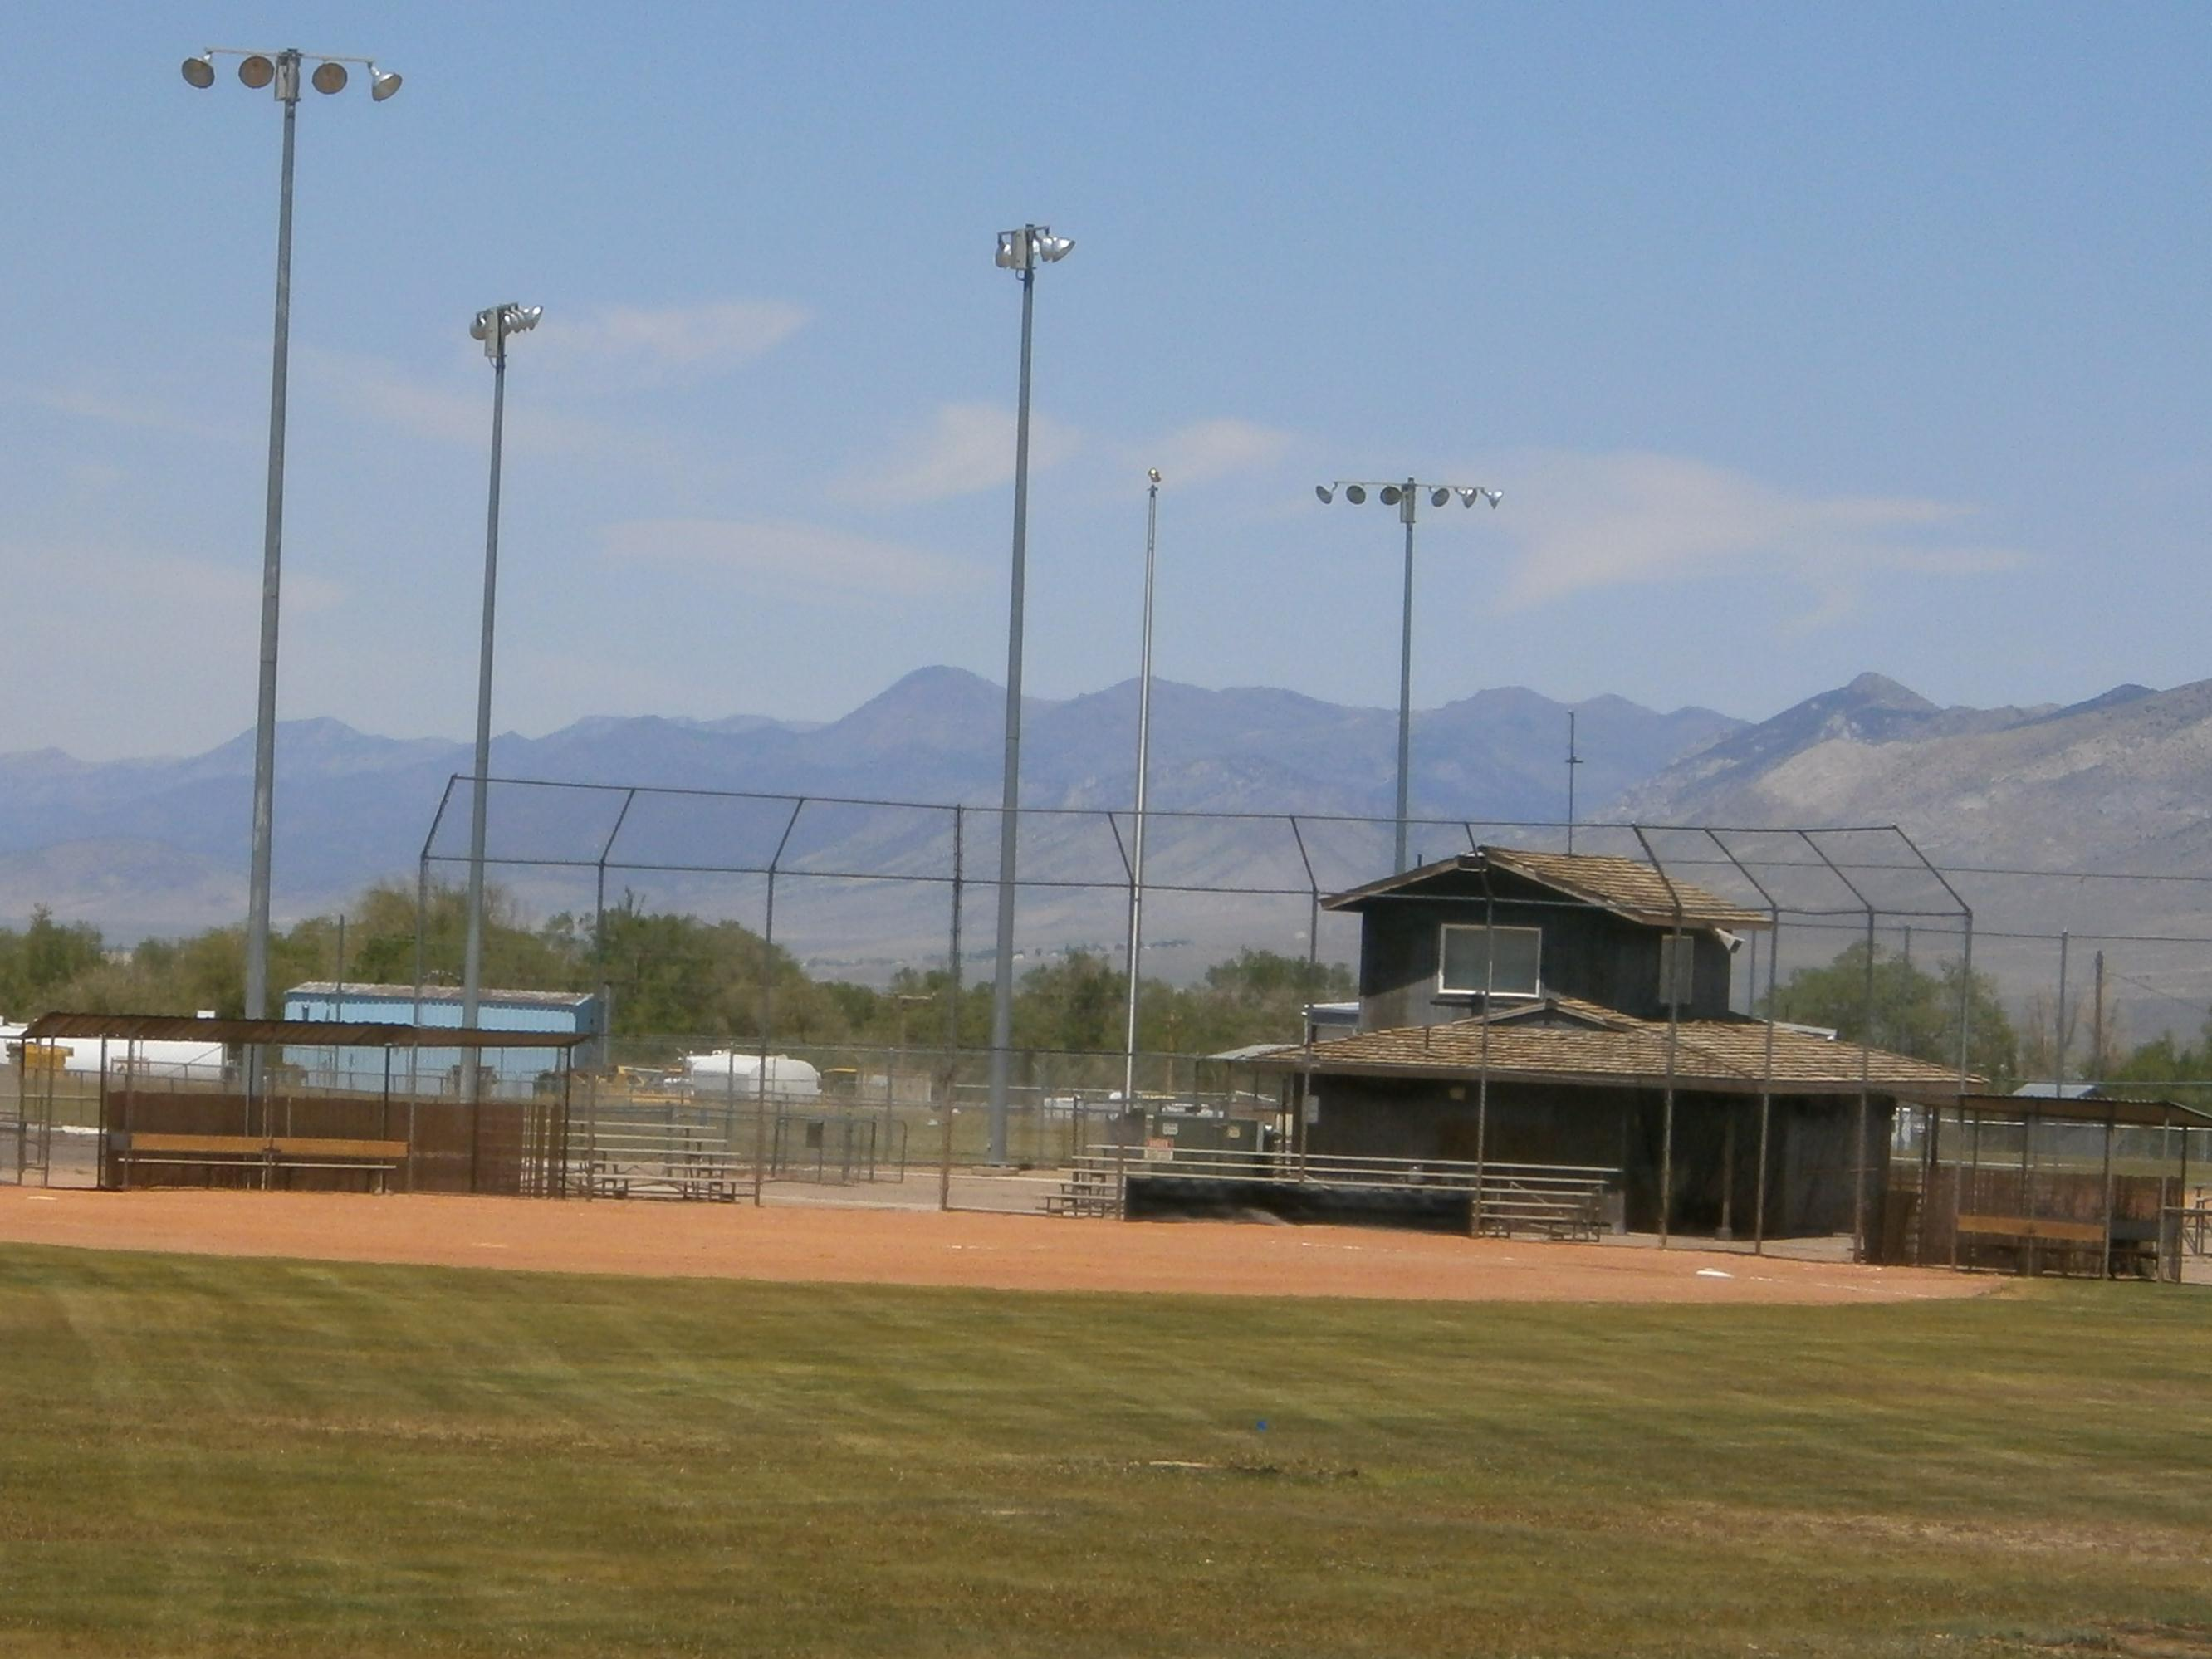 Baseball Field Facing Home Plate and Building